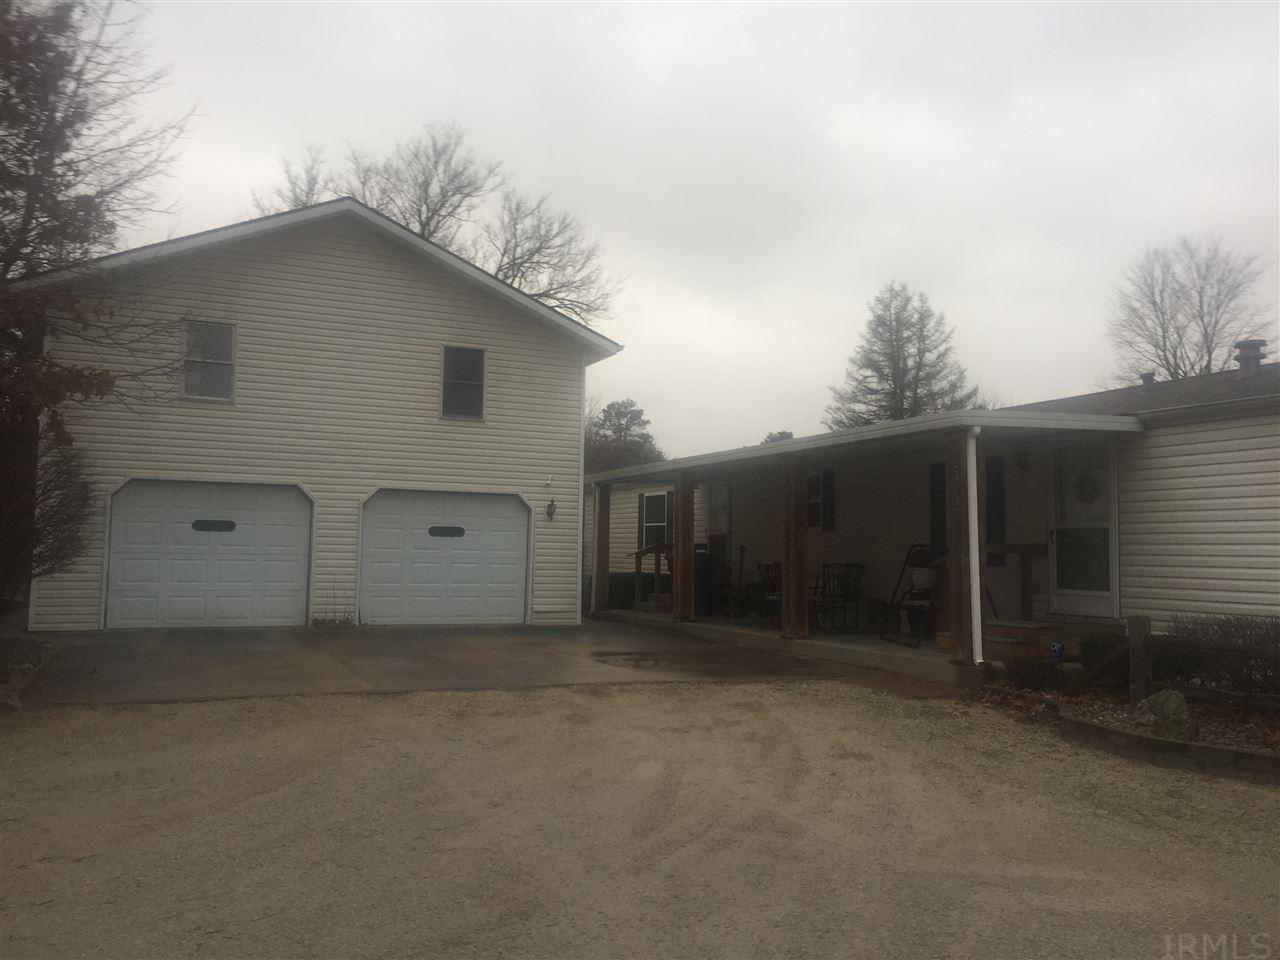 53287 Hilltop, Middlebury, IN 46540